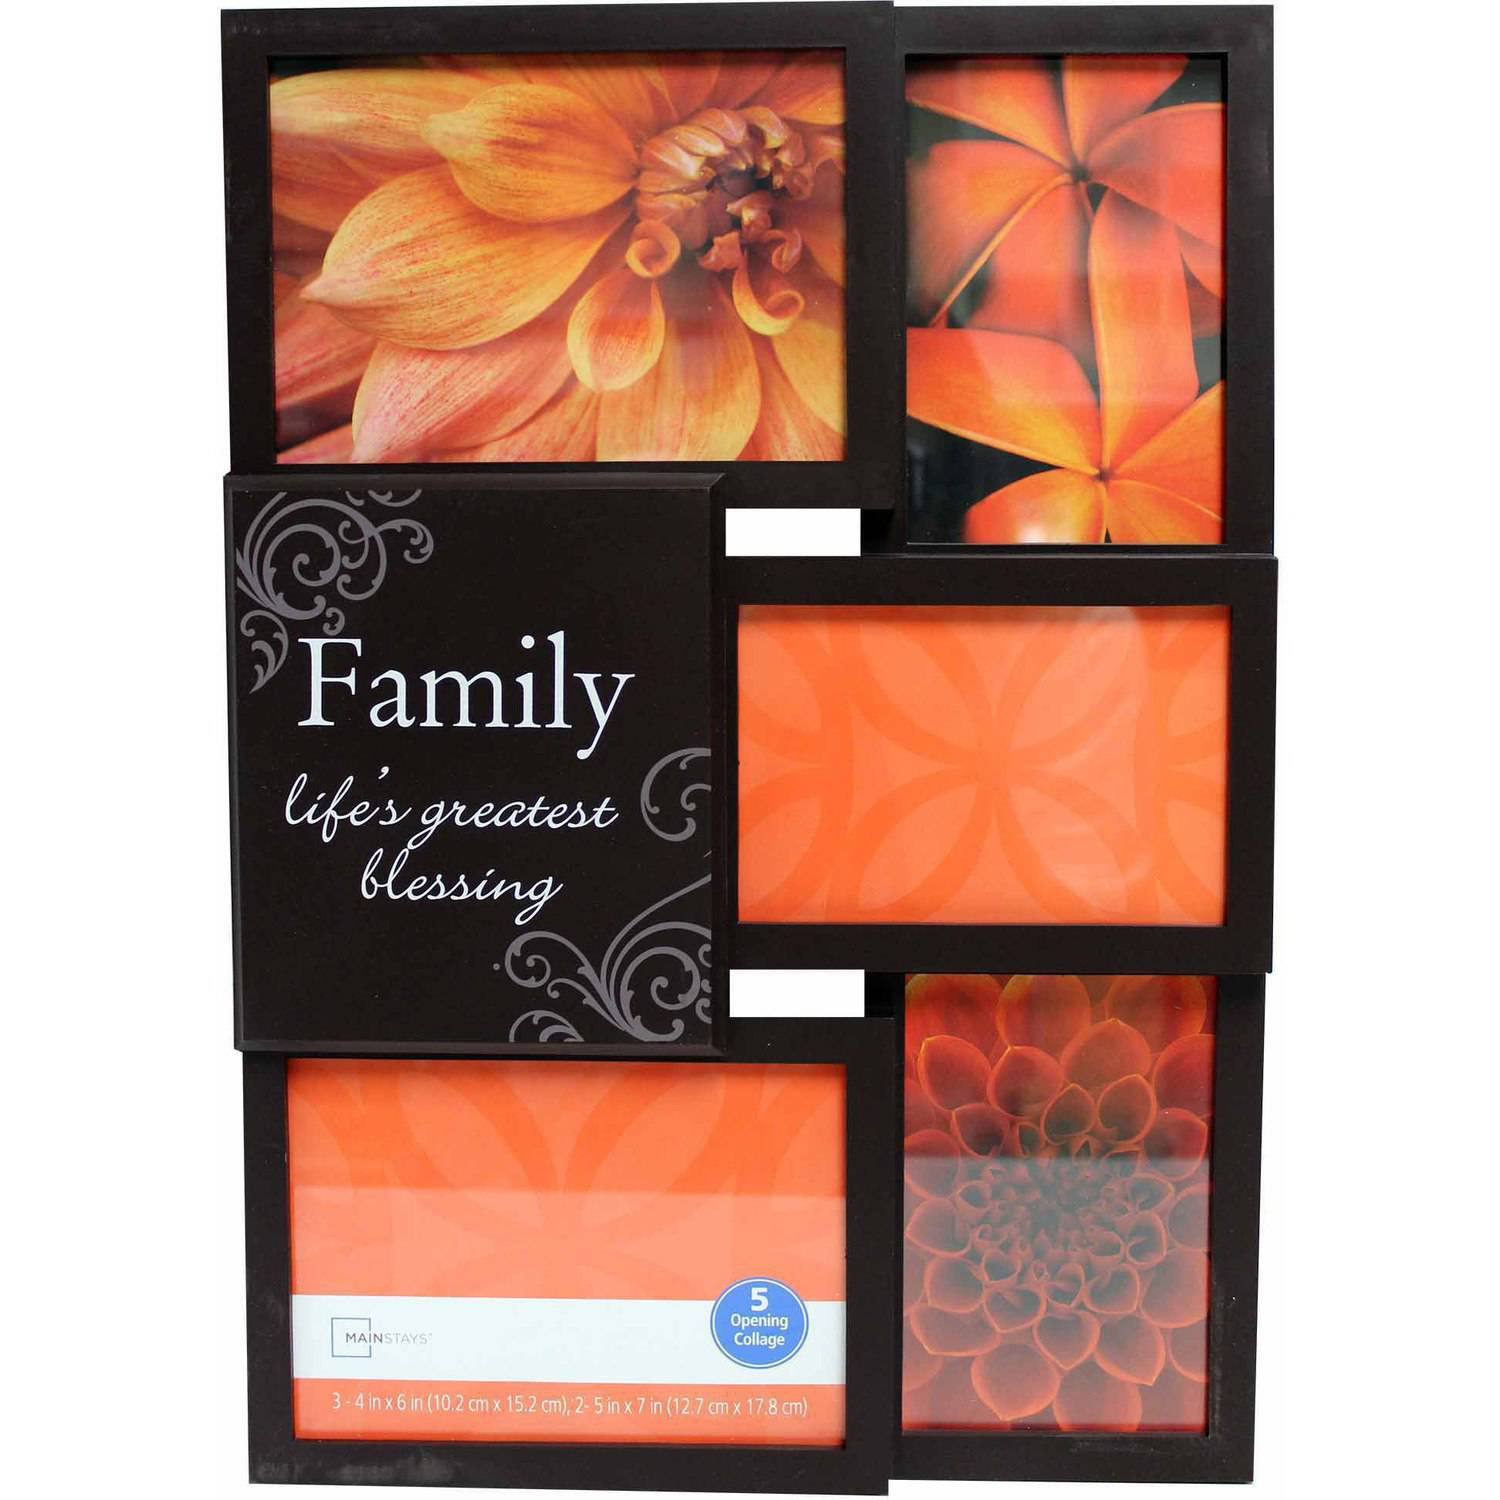 Mainstays 5-Opening Family Collage Picture Frame, Brown - Walmart.com